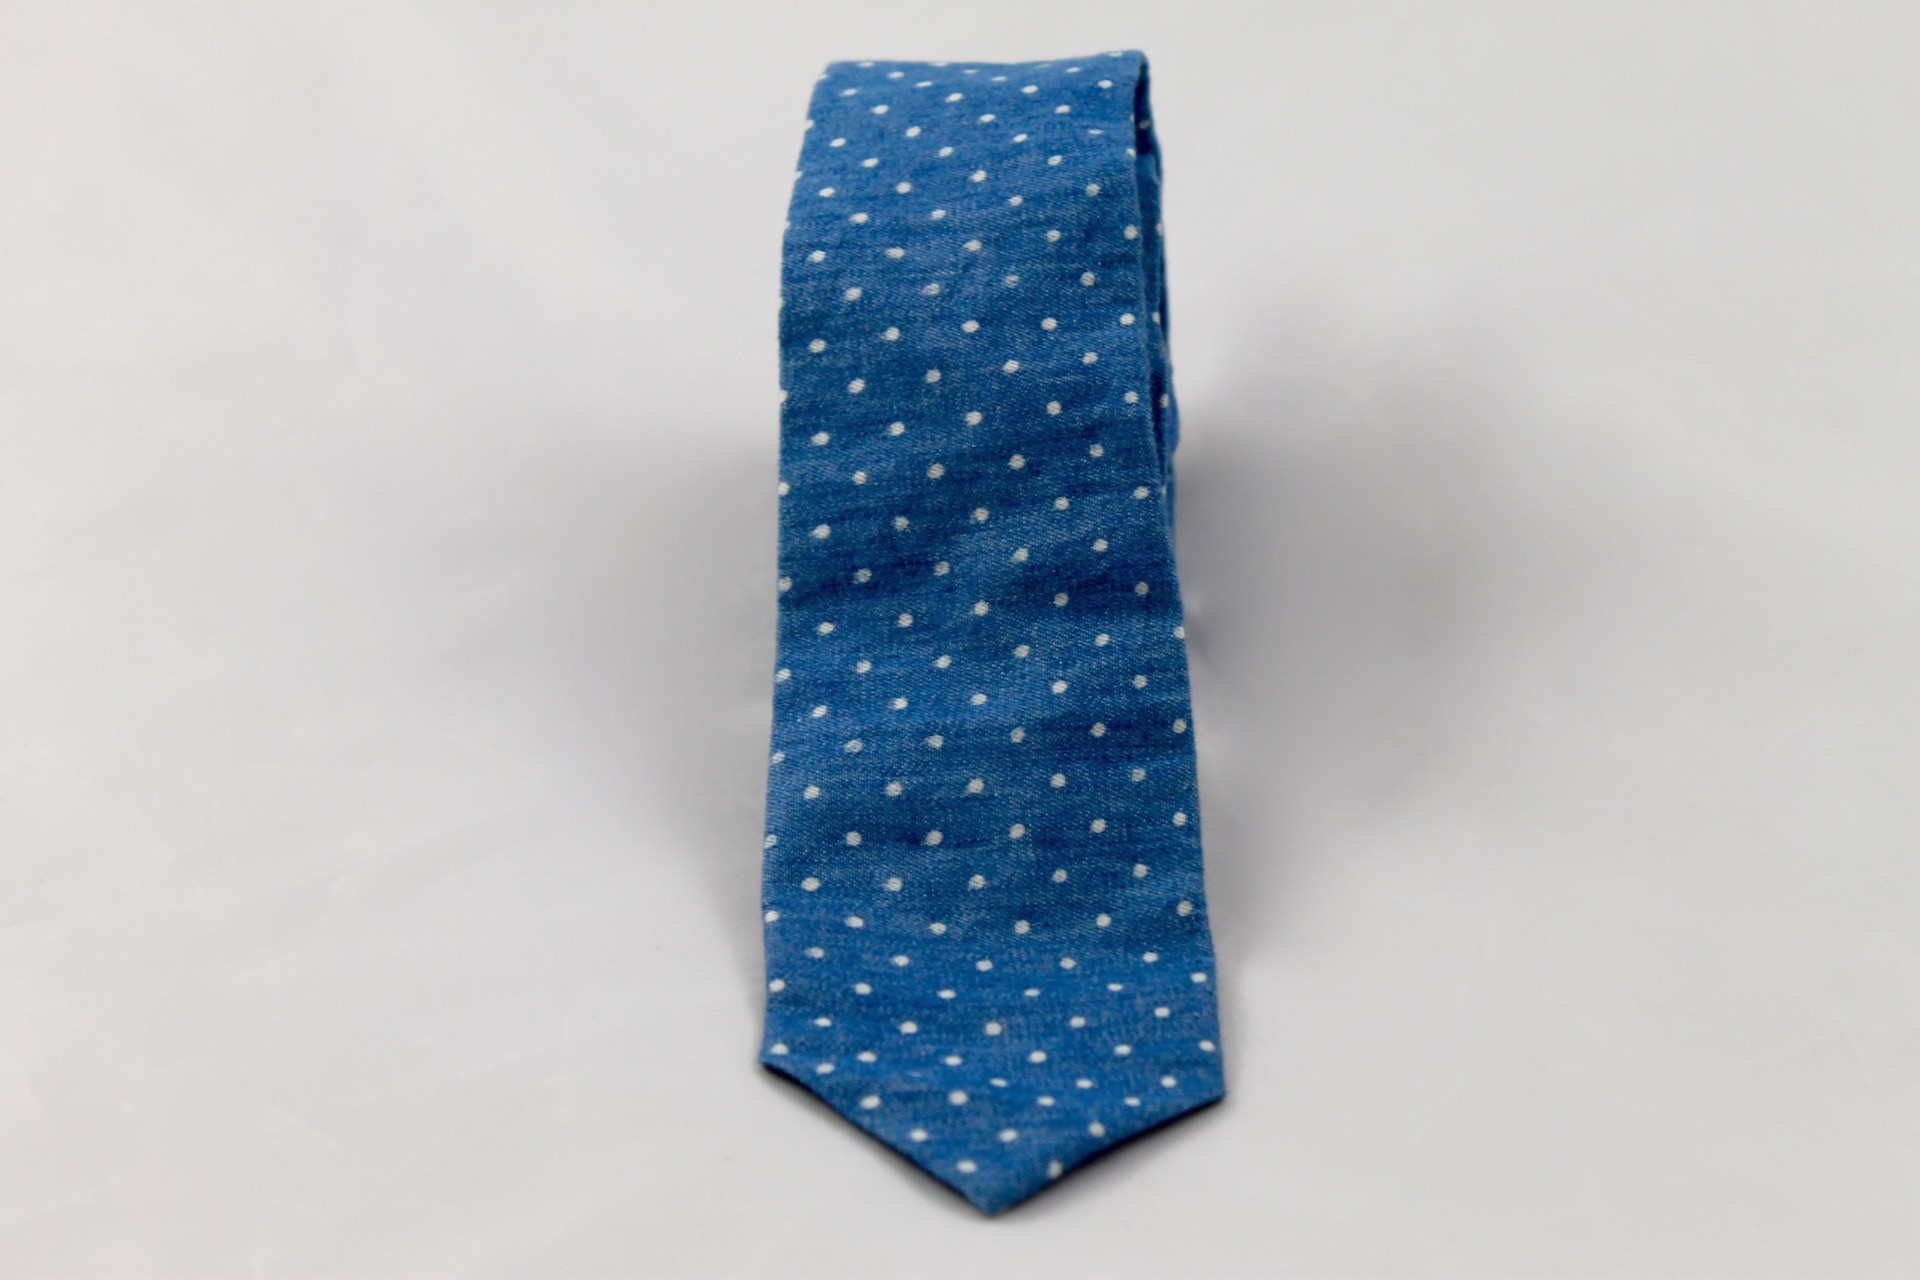 Dusty Blue Skinny with White Polka Dots by Lion's Thread  ,  TO THE MARKET , $35.00